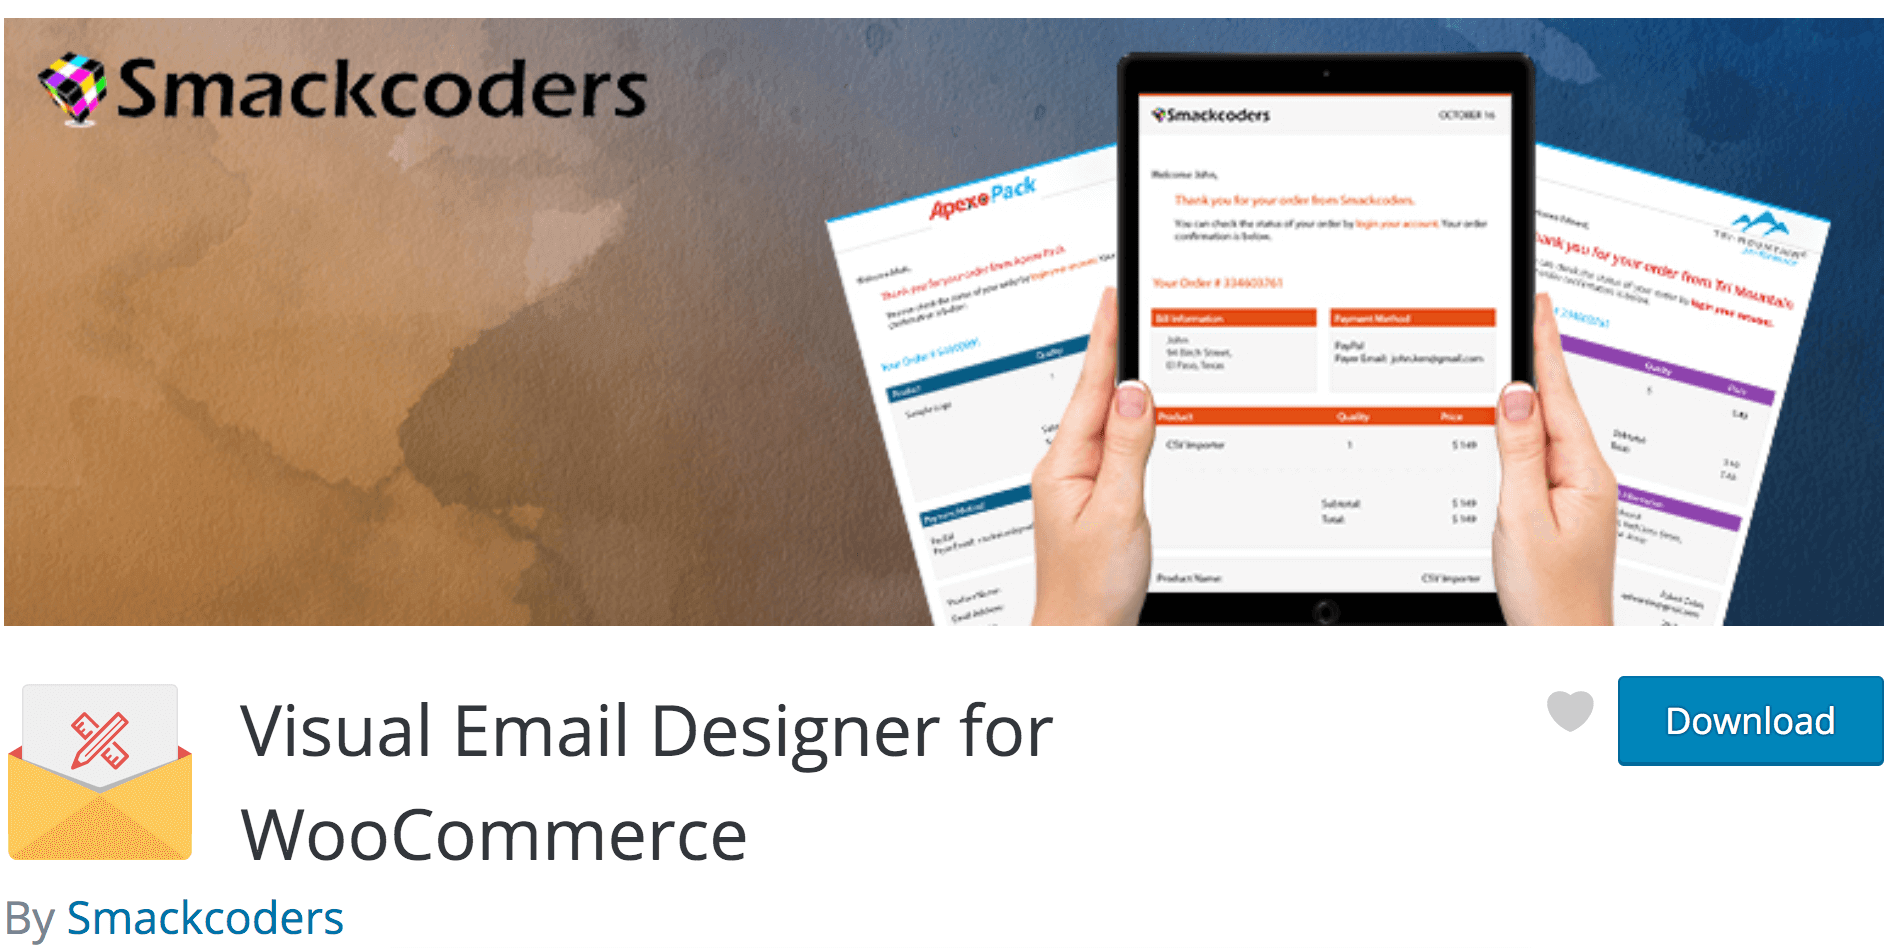 Smackcoders Visual Email Designer for WooCommerce